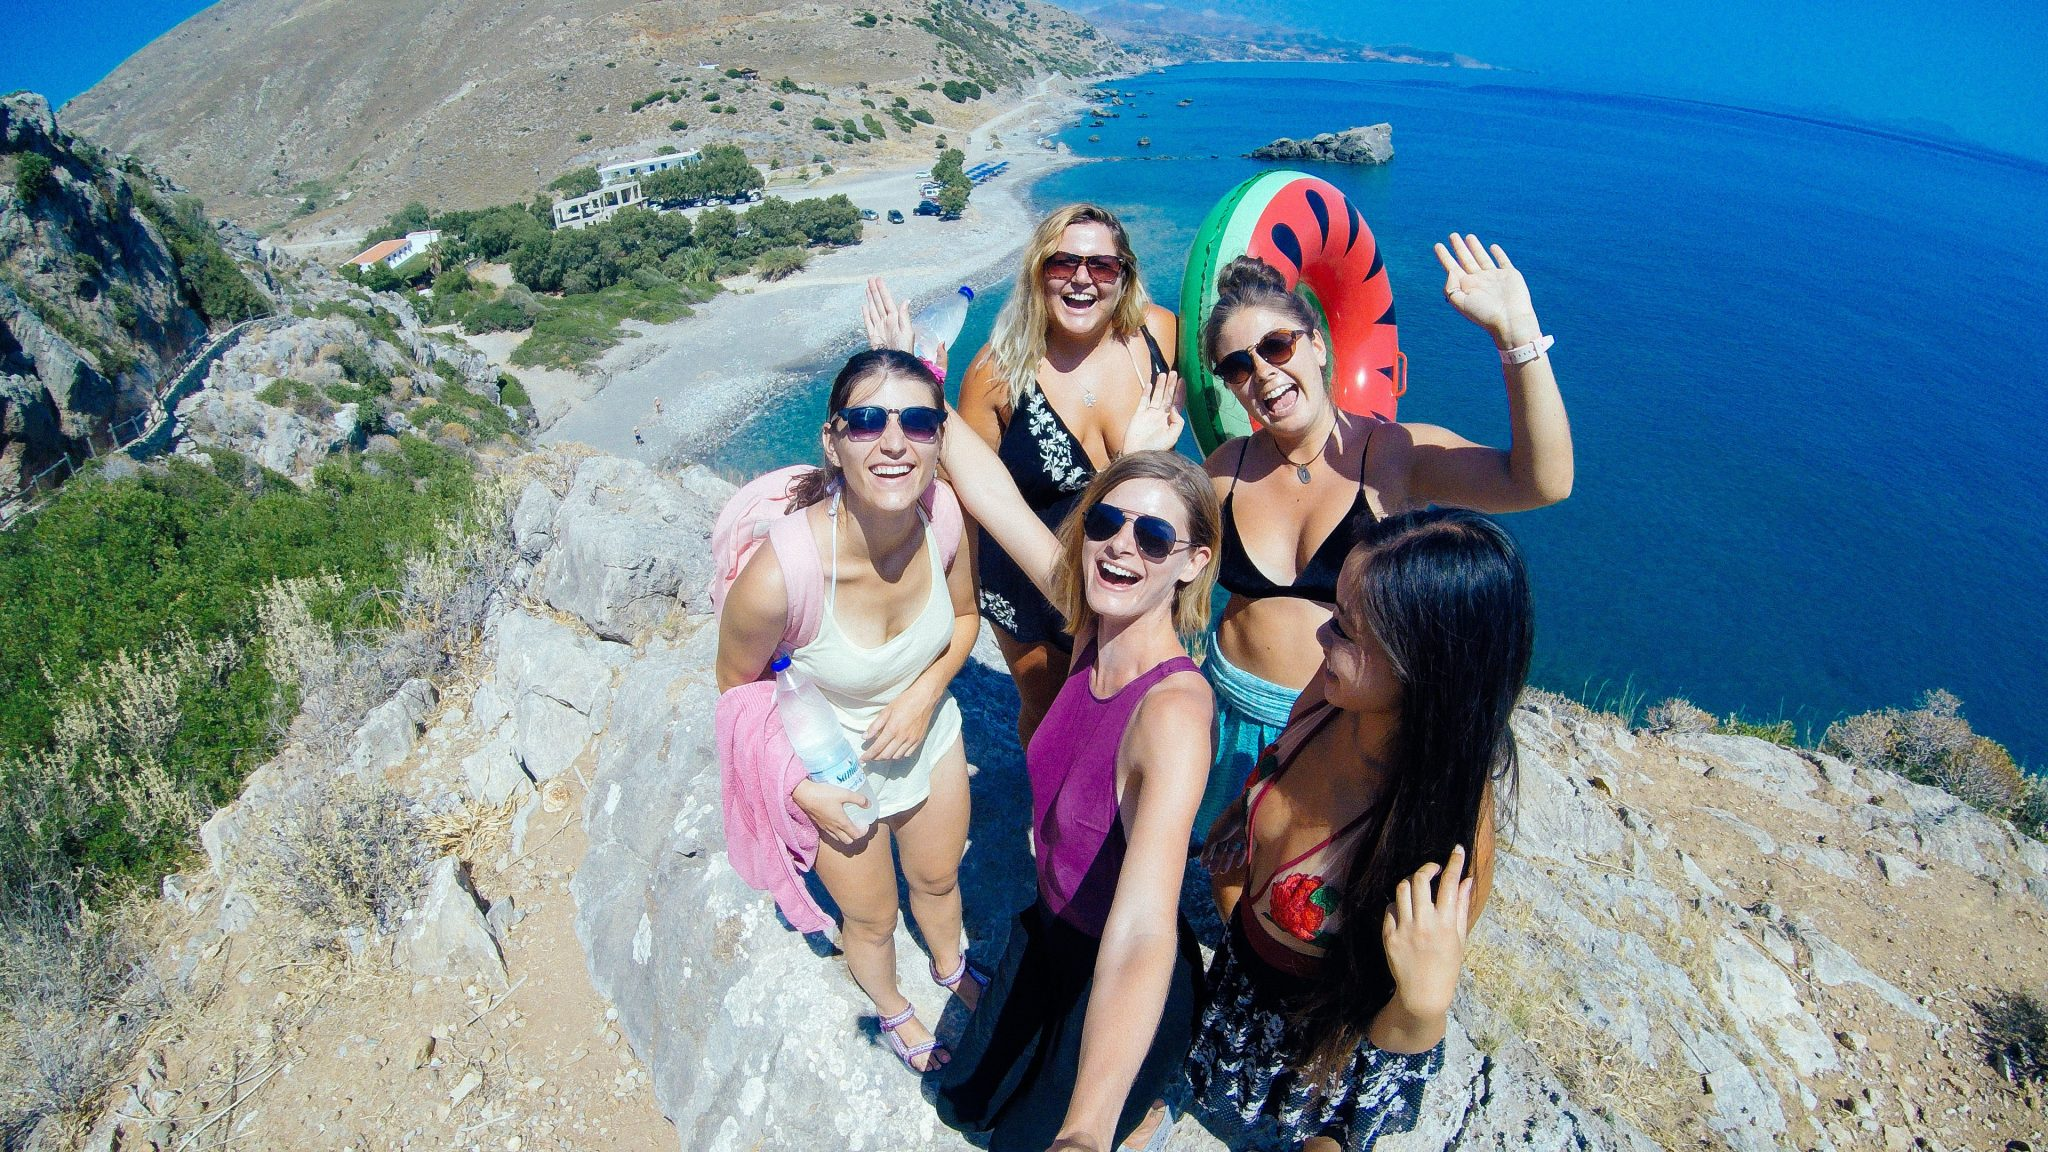 Girls weekend in Crete, Greece - Europe Travel